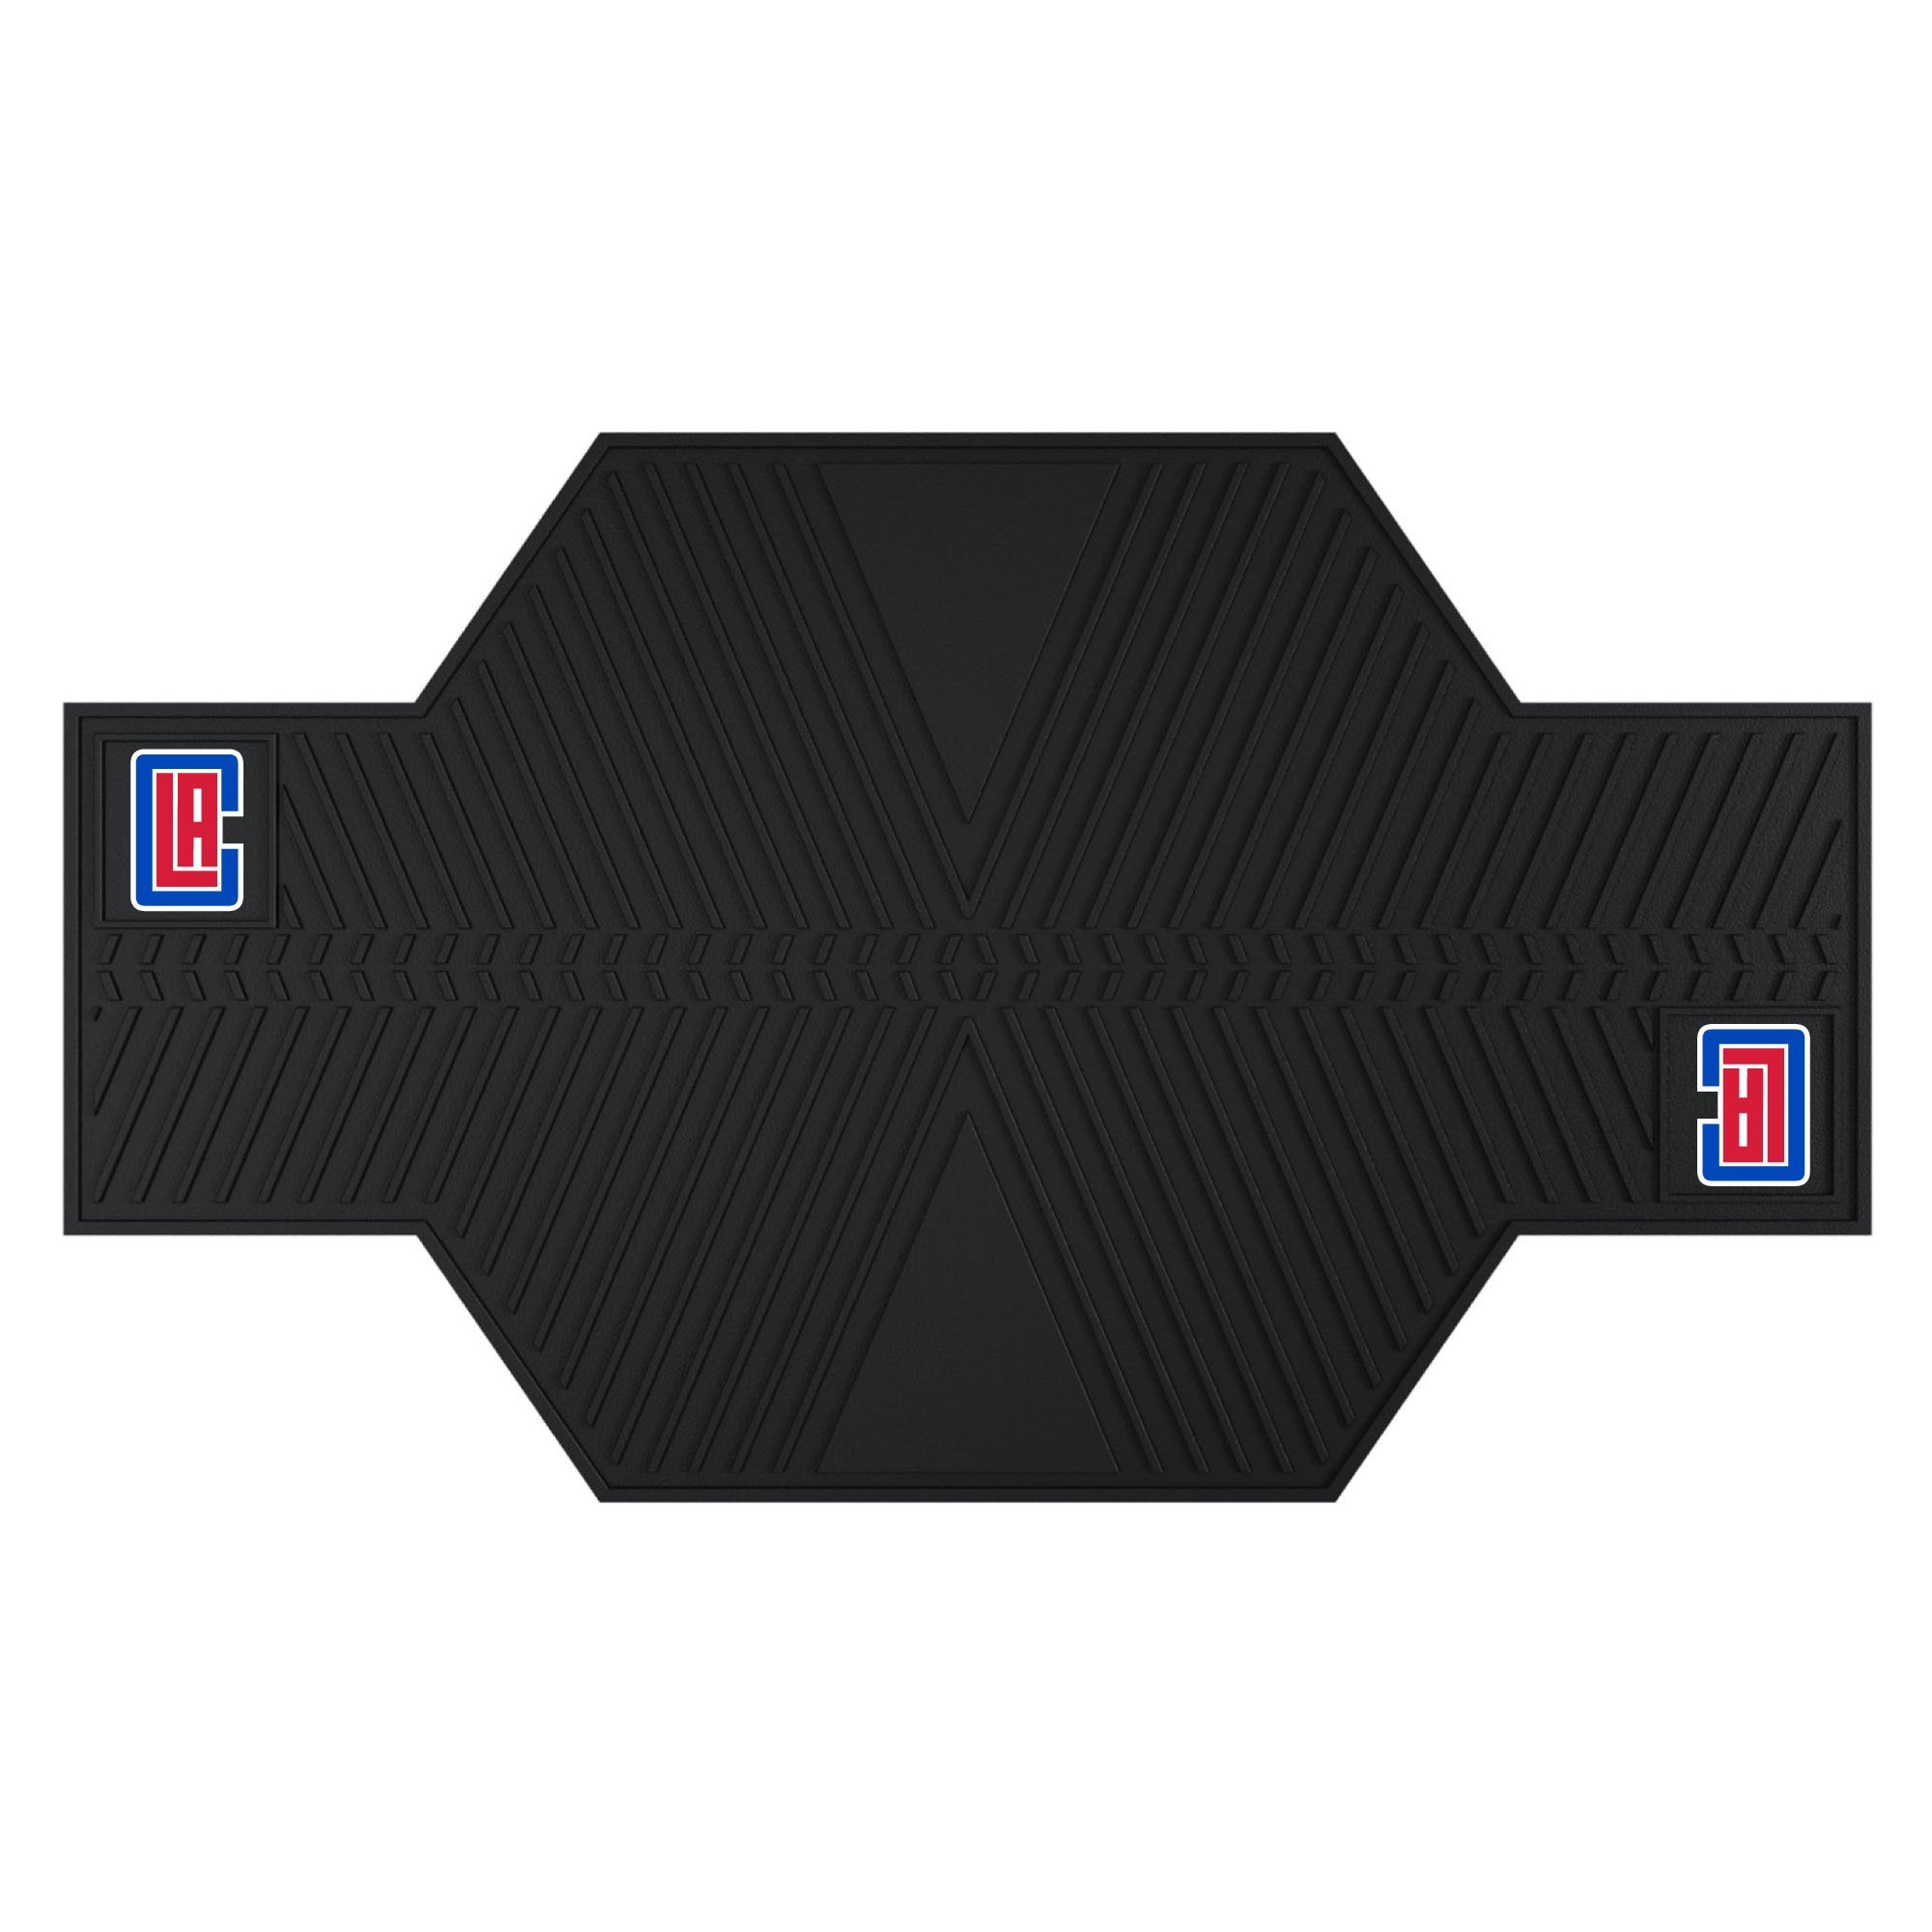 FANMATS 15380 NBA Los Angeles Clippers Motorcycle Mat